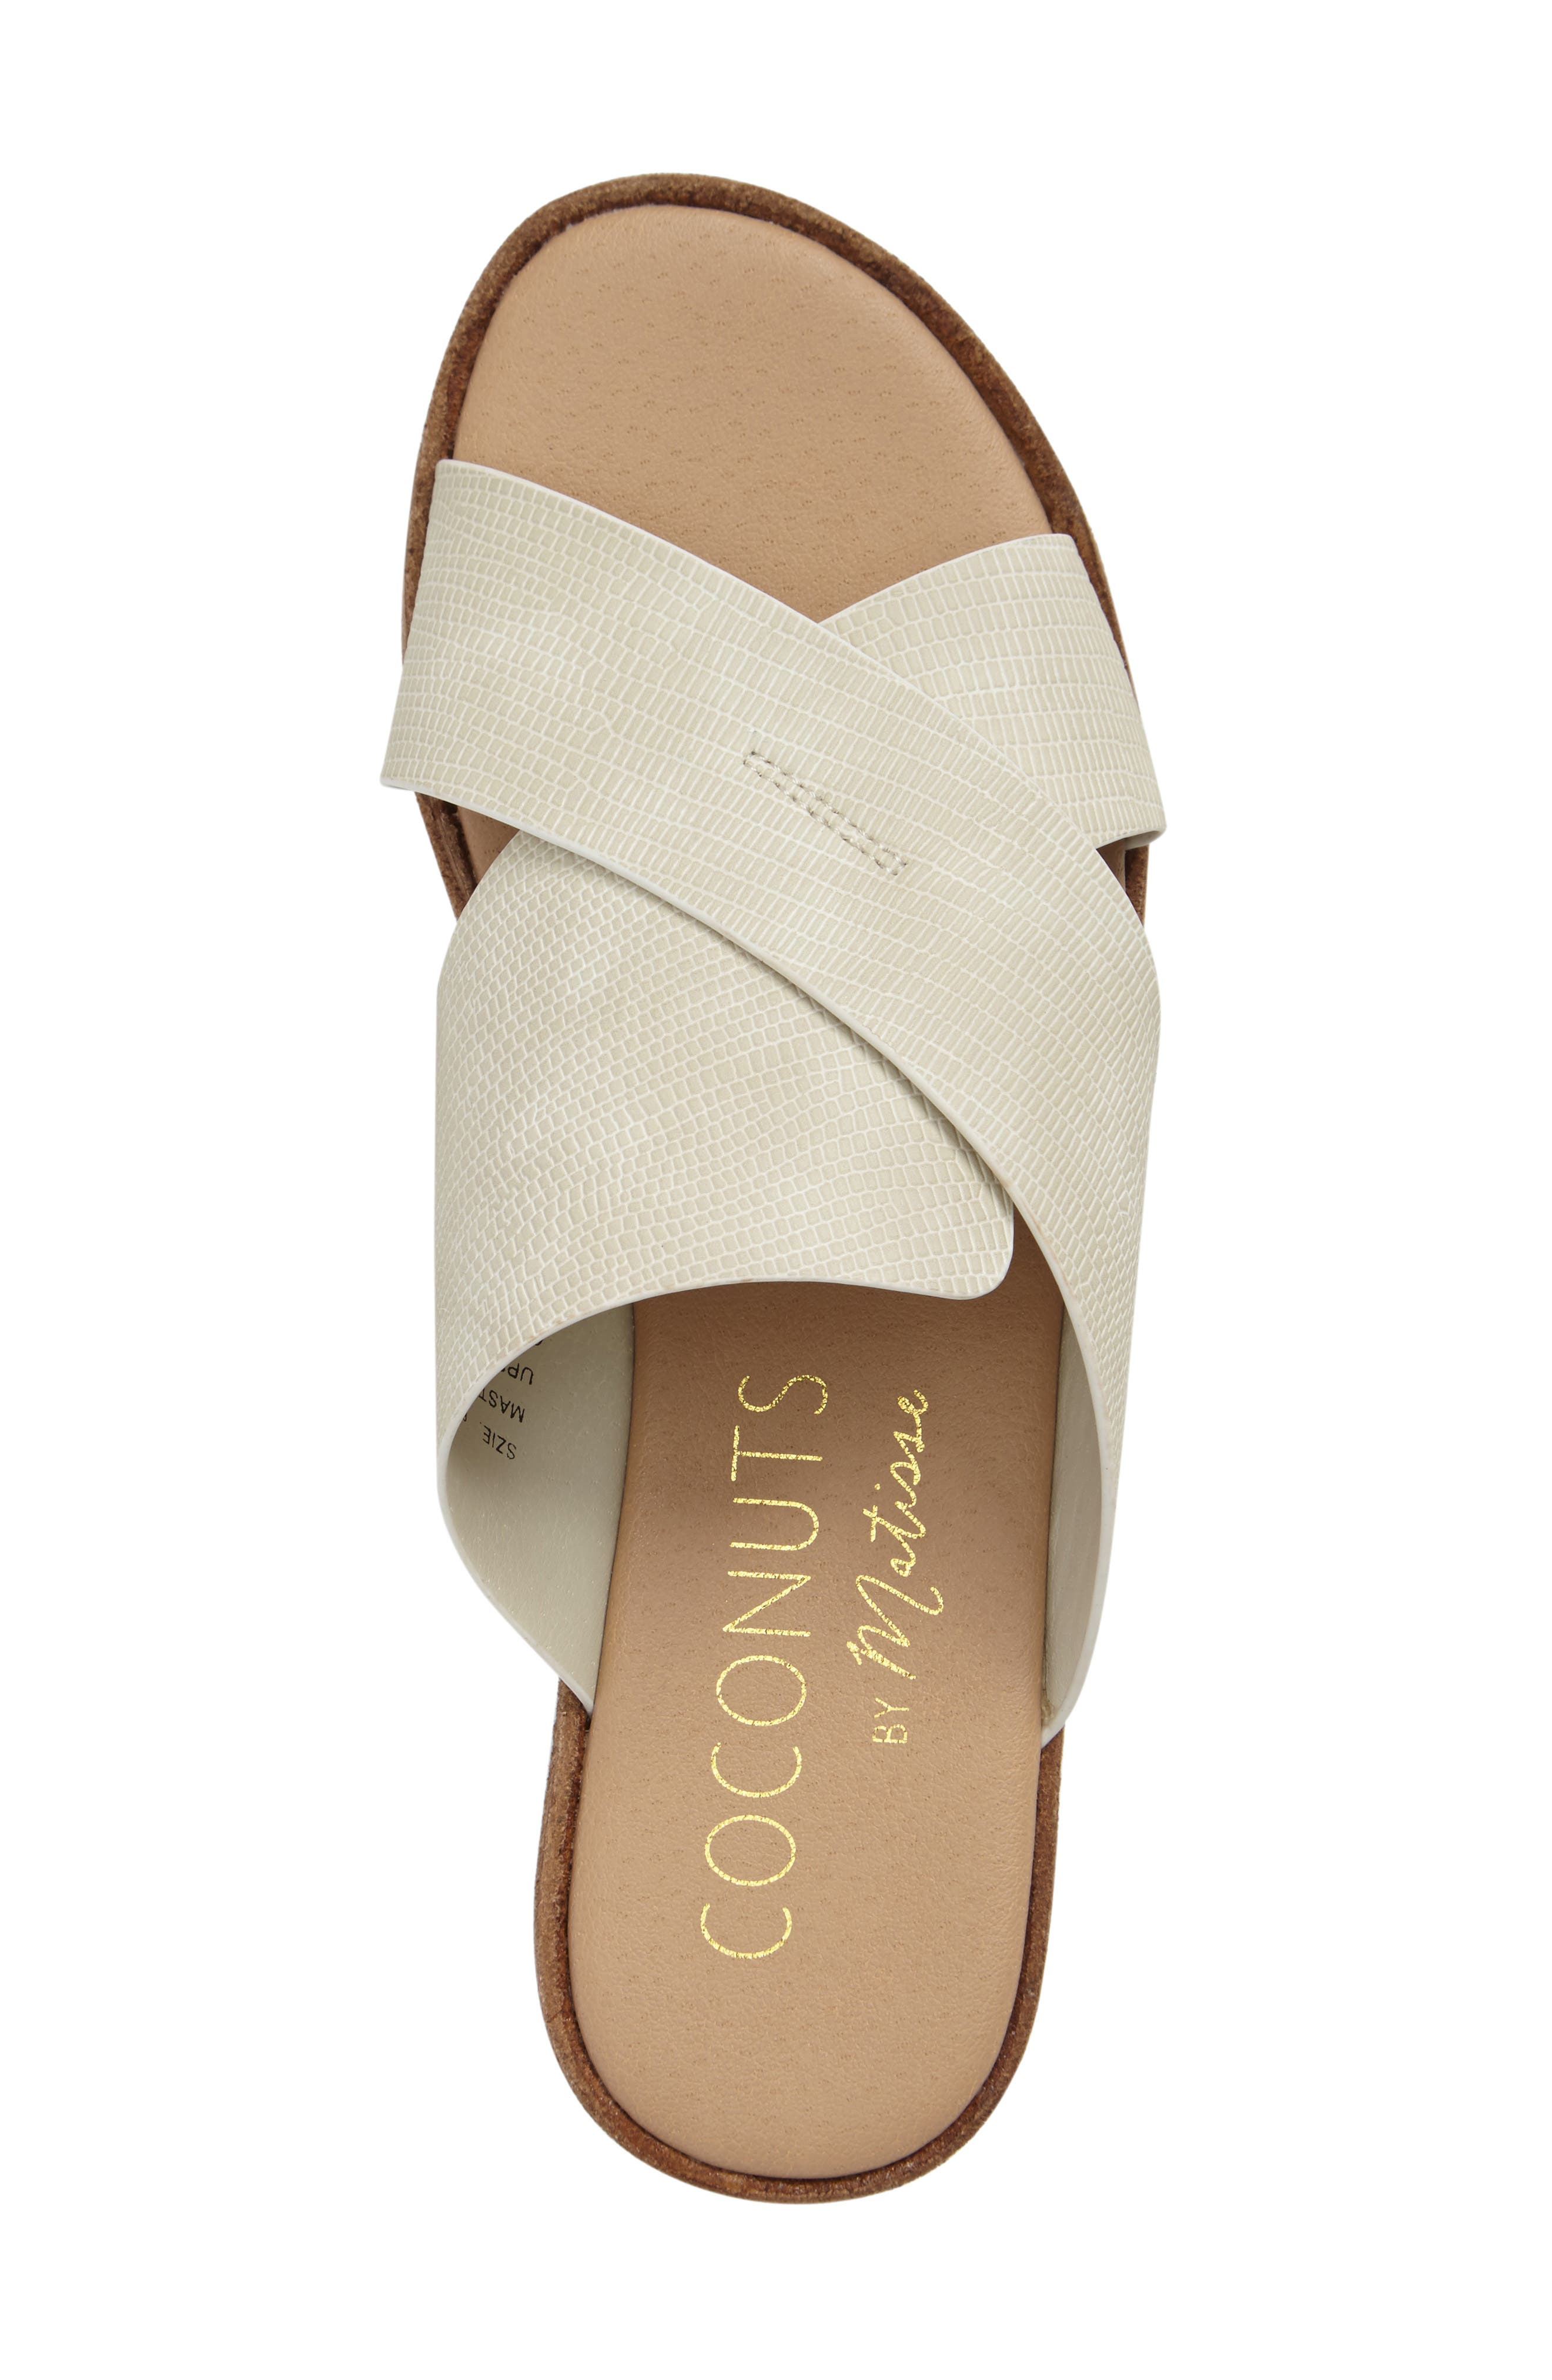 Coconuts by Matisse Masters Cross Strap Platform Sandal,                             Alternate thumbnail 3, color,                             White Leather